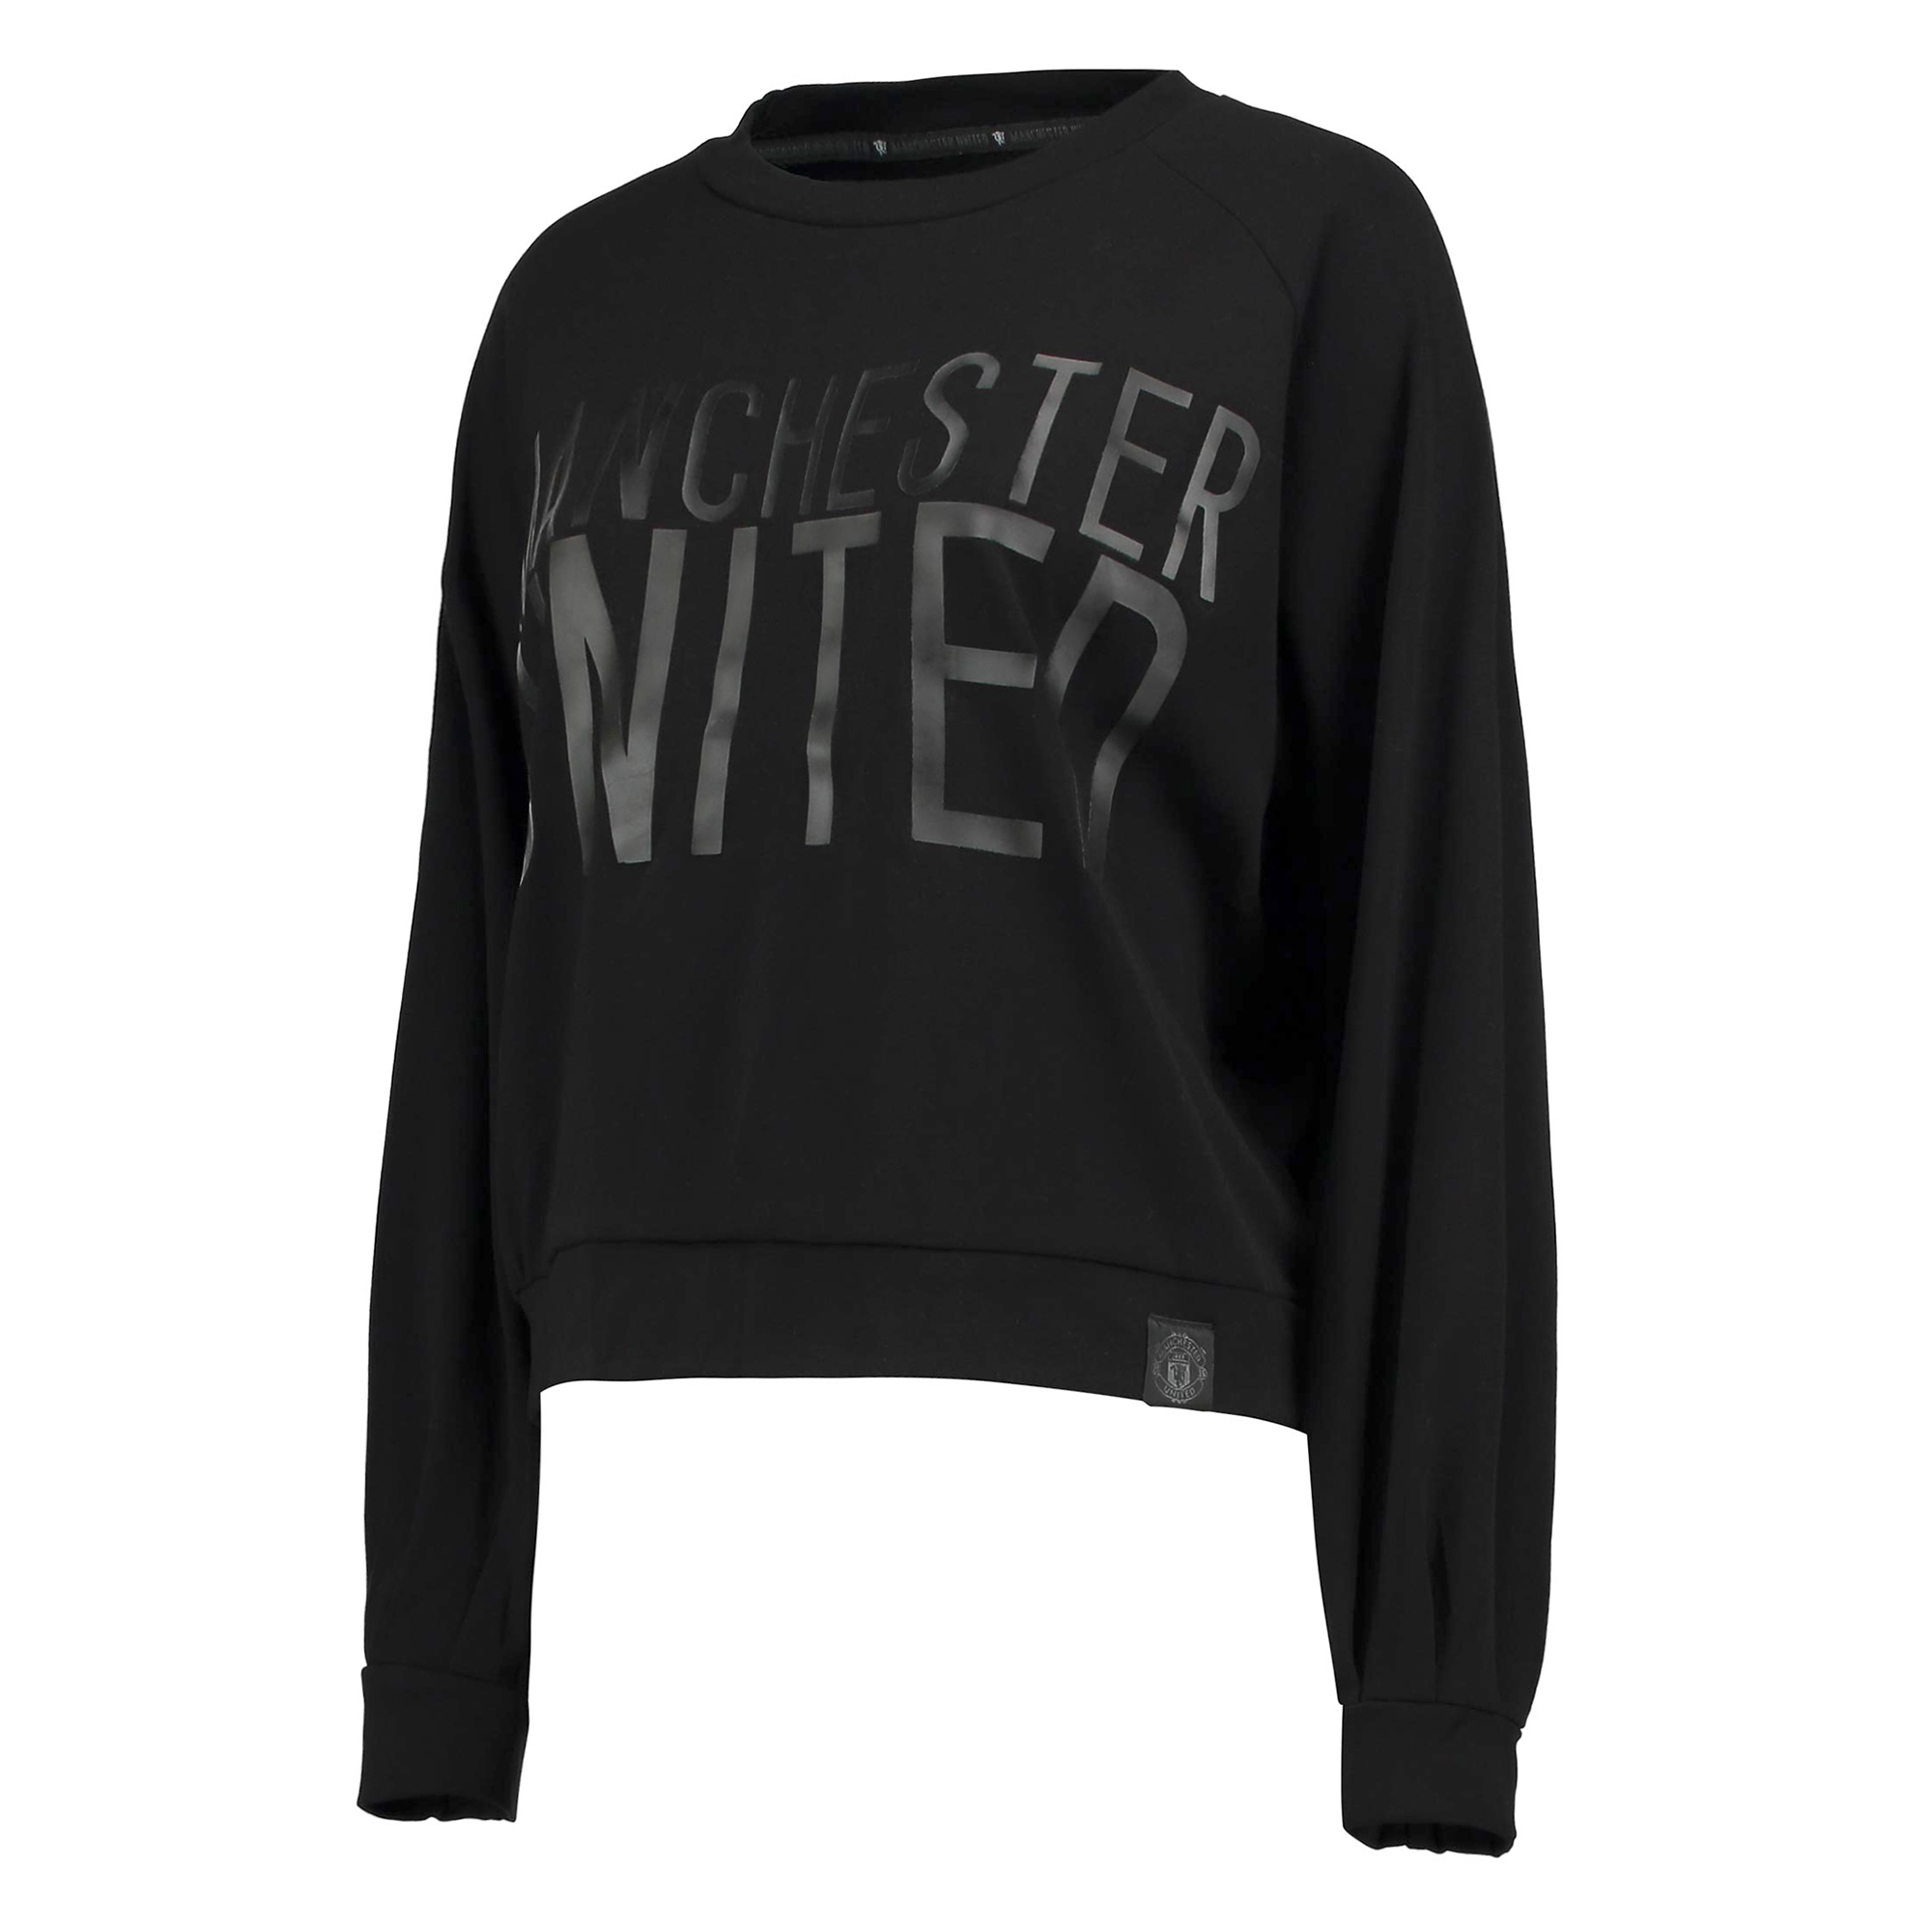 Manchester United Sportswear Crew Neck Sweater - Black - Womens